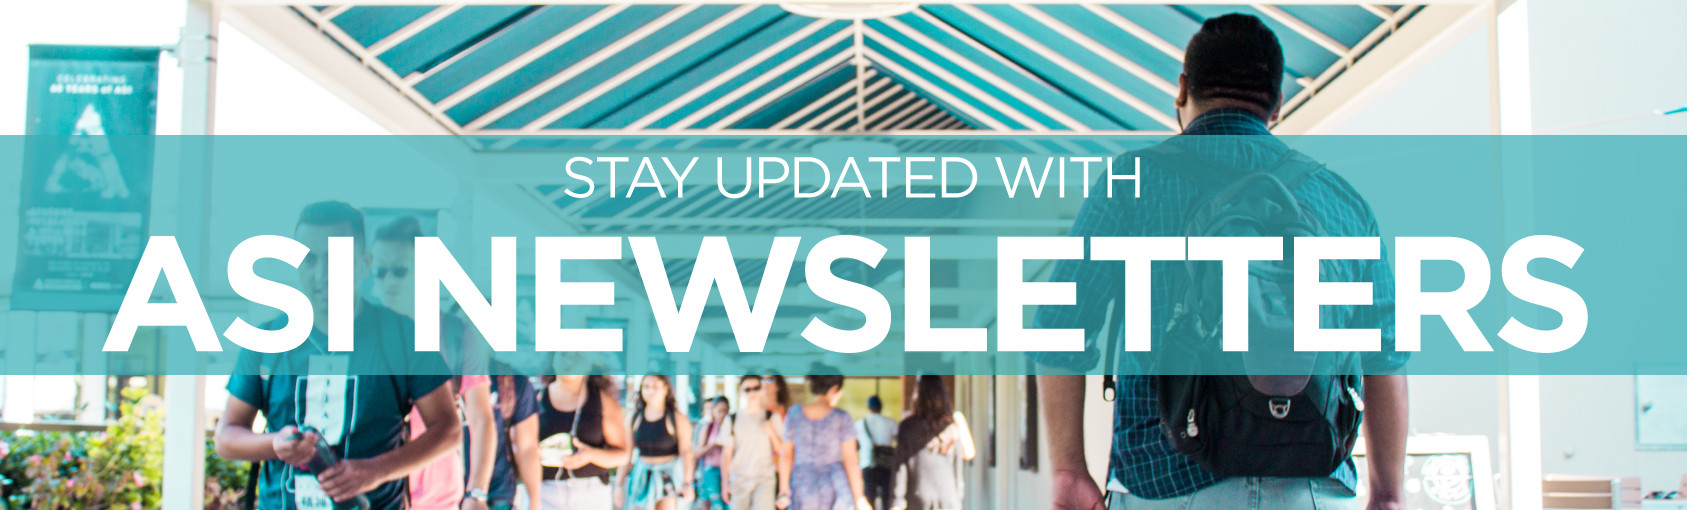 Stay Updated With ASI Newsletters banner